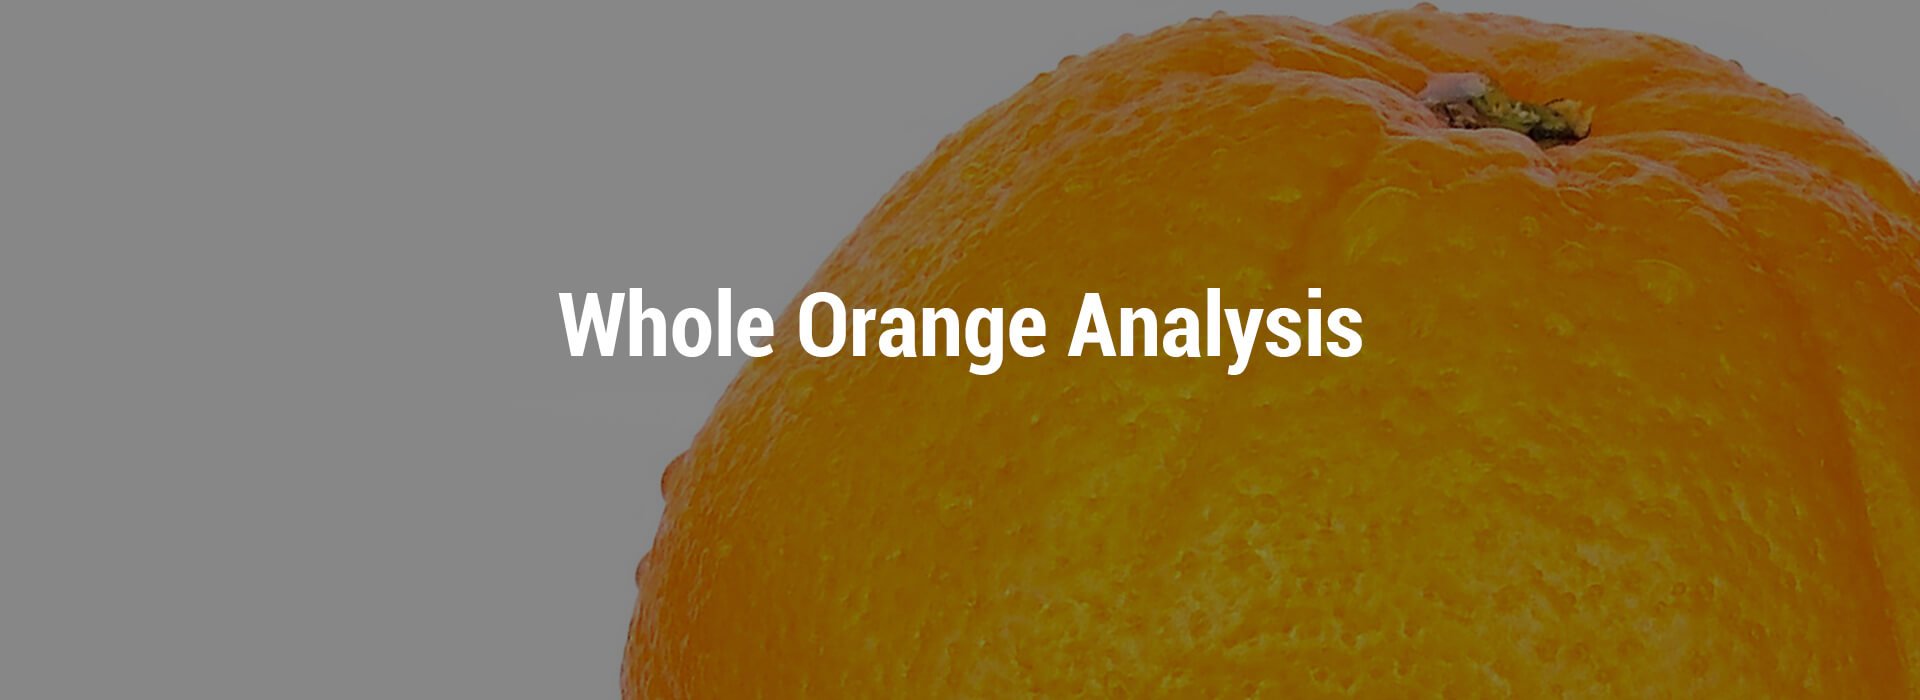 LVHS-whole-orange-header-1